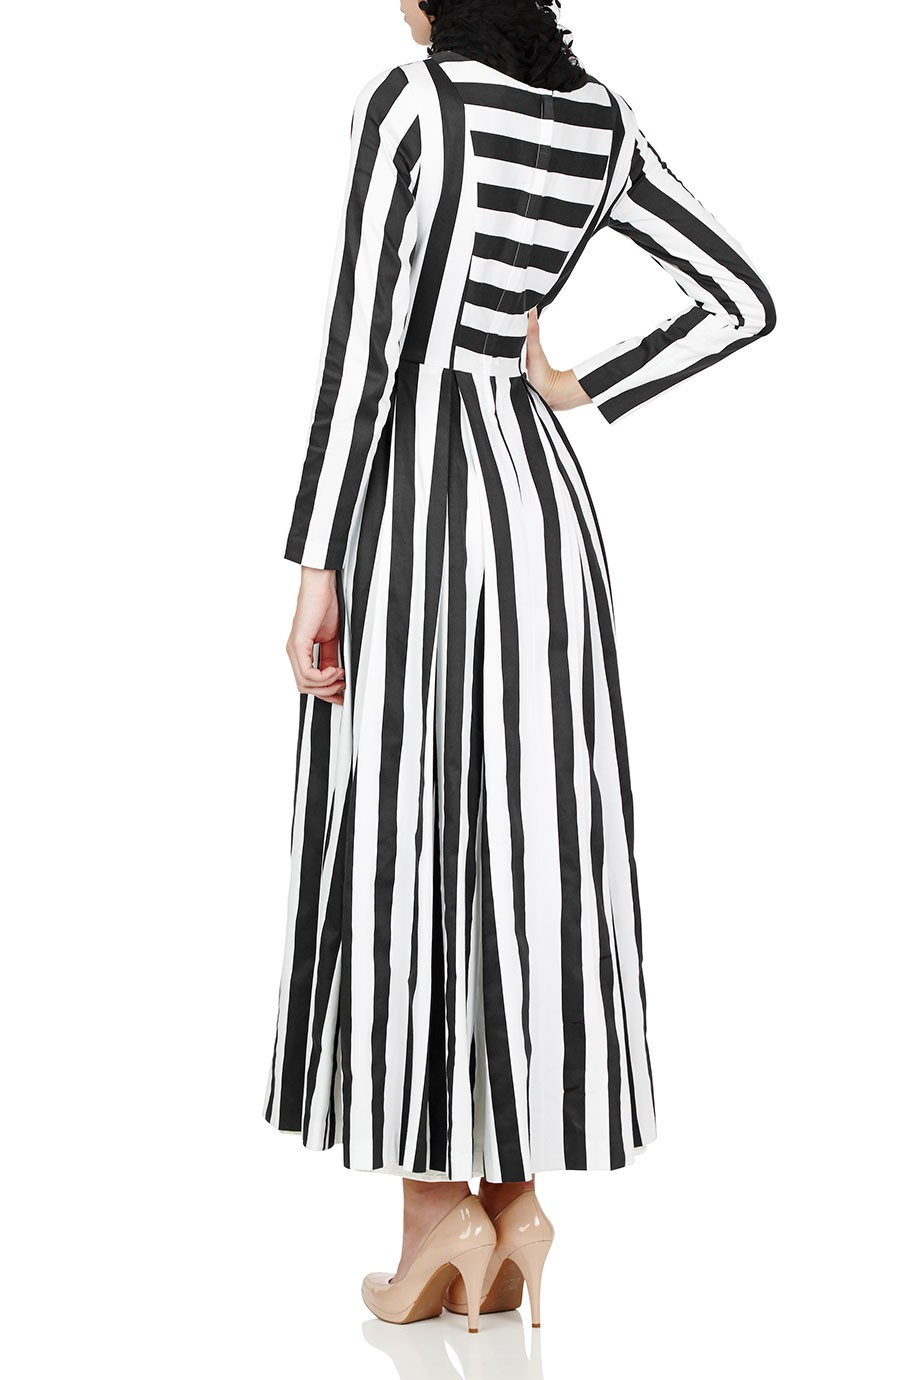 Diana-Kotb-Touring-Dress-Stripe-02